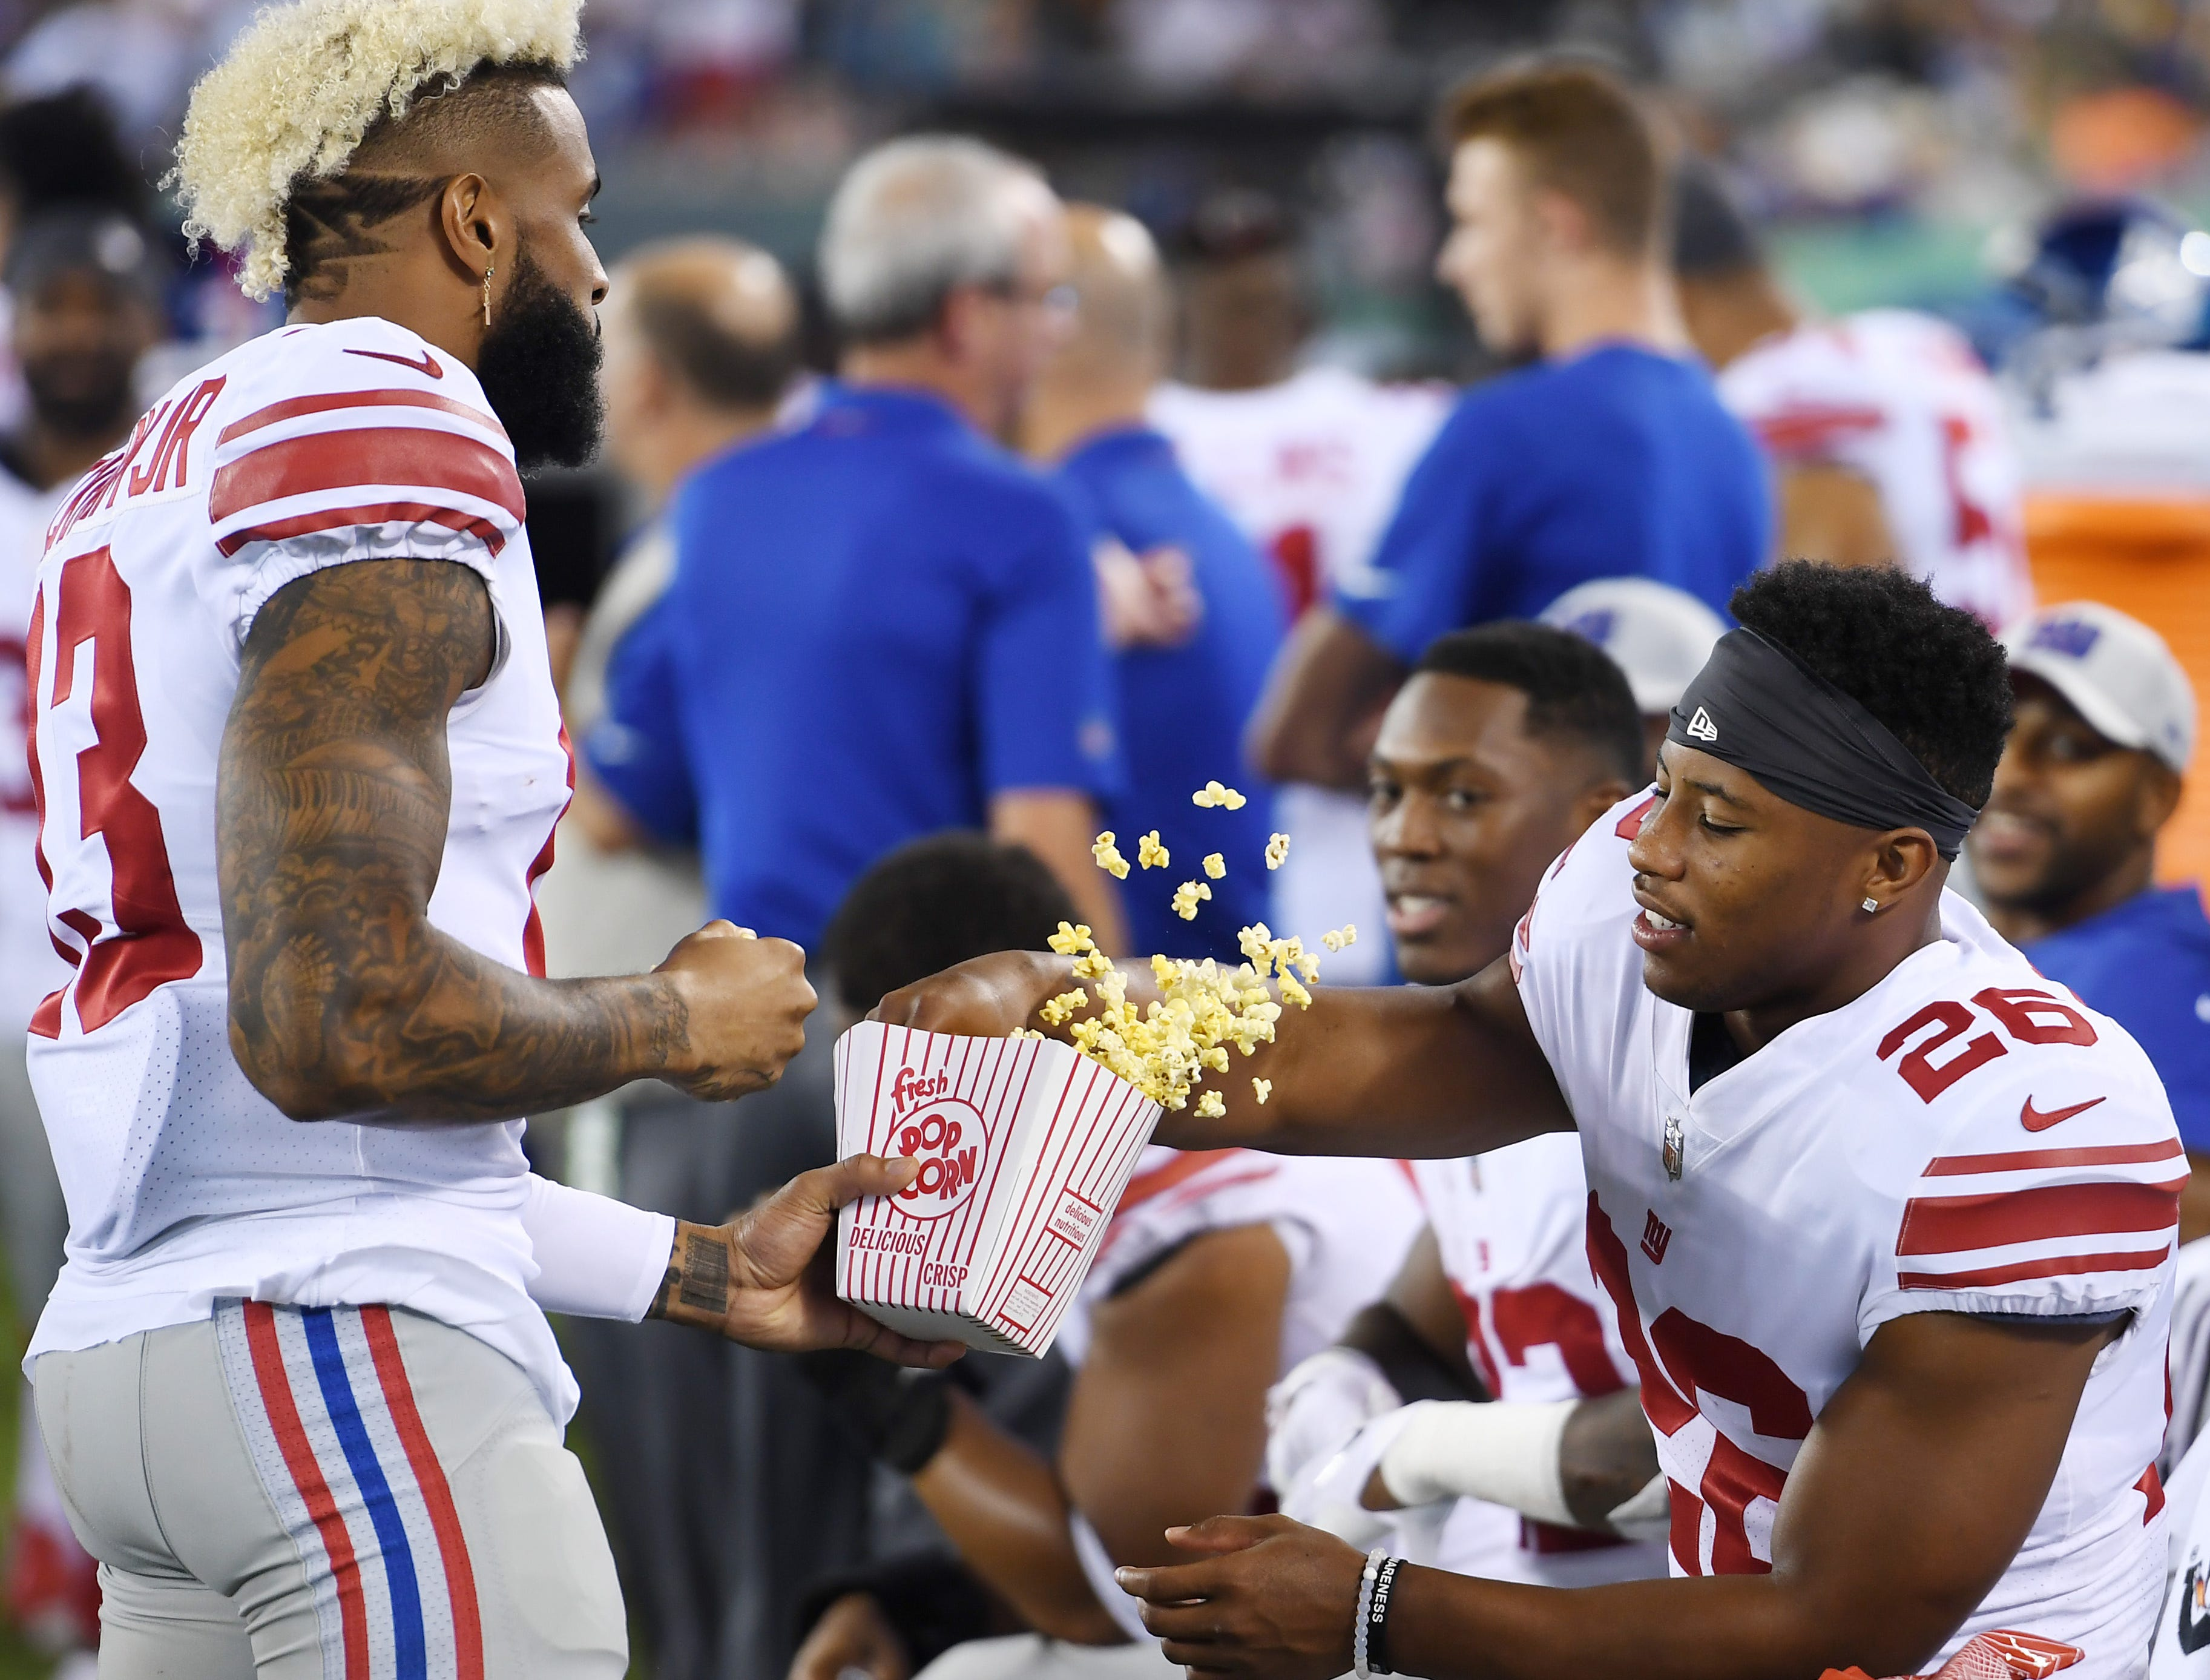 Giants vs. Jets preseason game at MetLife Stadium in East Rutherford on Friday, August 24, 2018. G #13 Odell Beckham Jr. and #26 Saquon Barkley eat popcorn in the fourth quarter. (Michael Karas/@michaelkarasphoto)